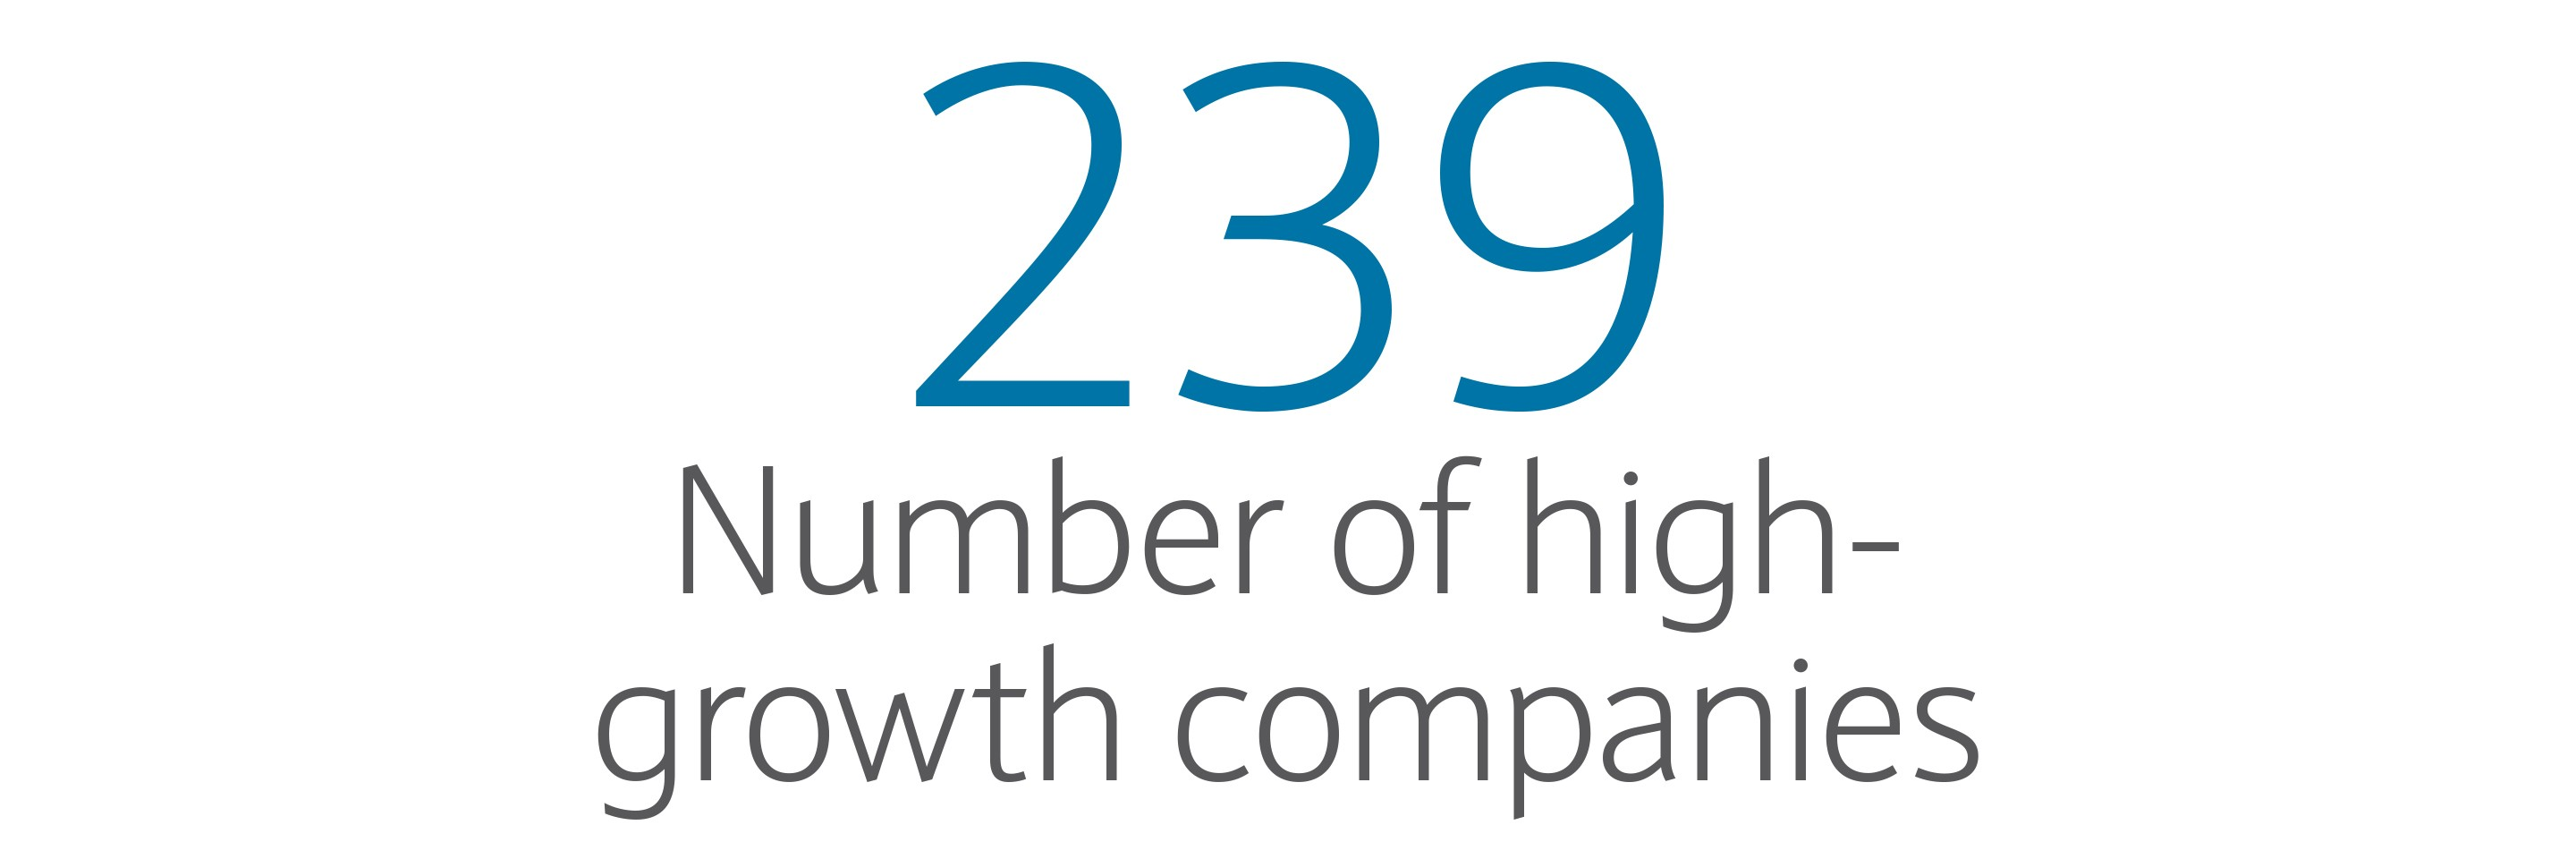 239: Number of high-growth companies